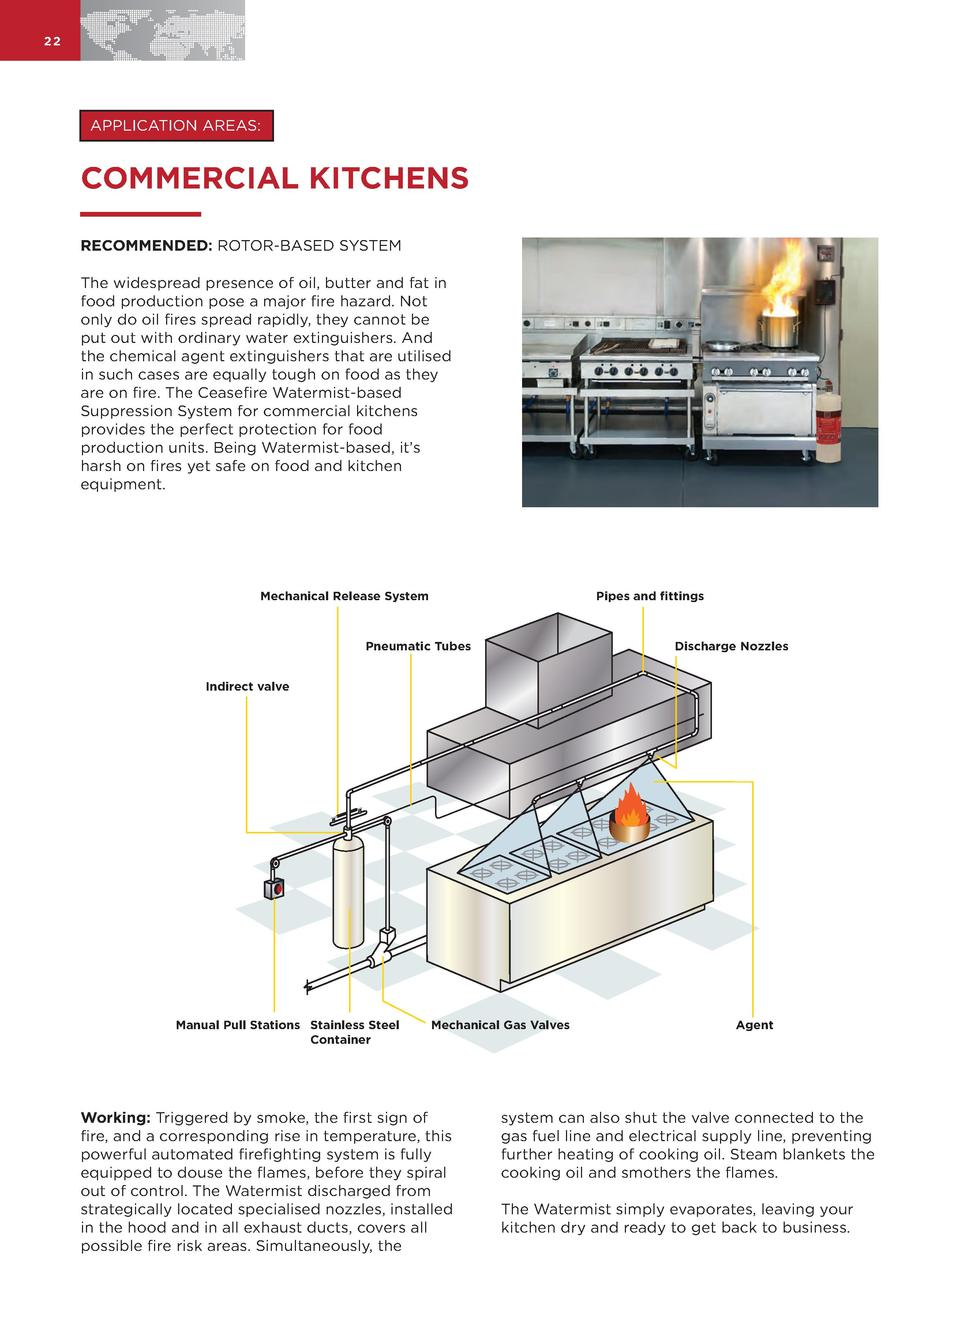 22  APPLICATION AREAS   COMMERCIAL KITCHENS RECOMMENDED  ROTOR-BASED SYSTEM The widespread presence of oil, butter and fat...